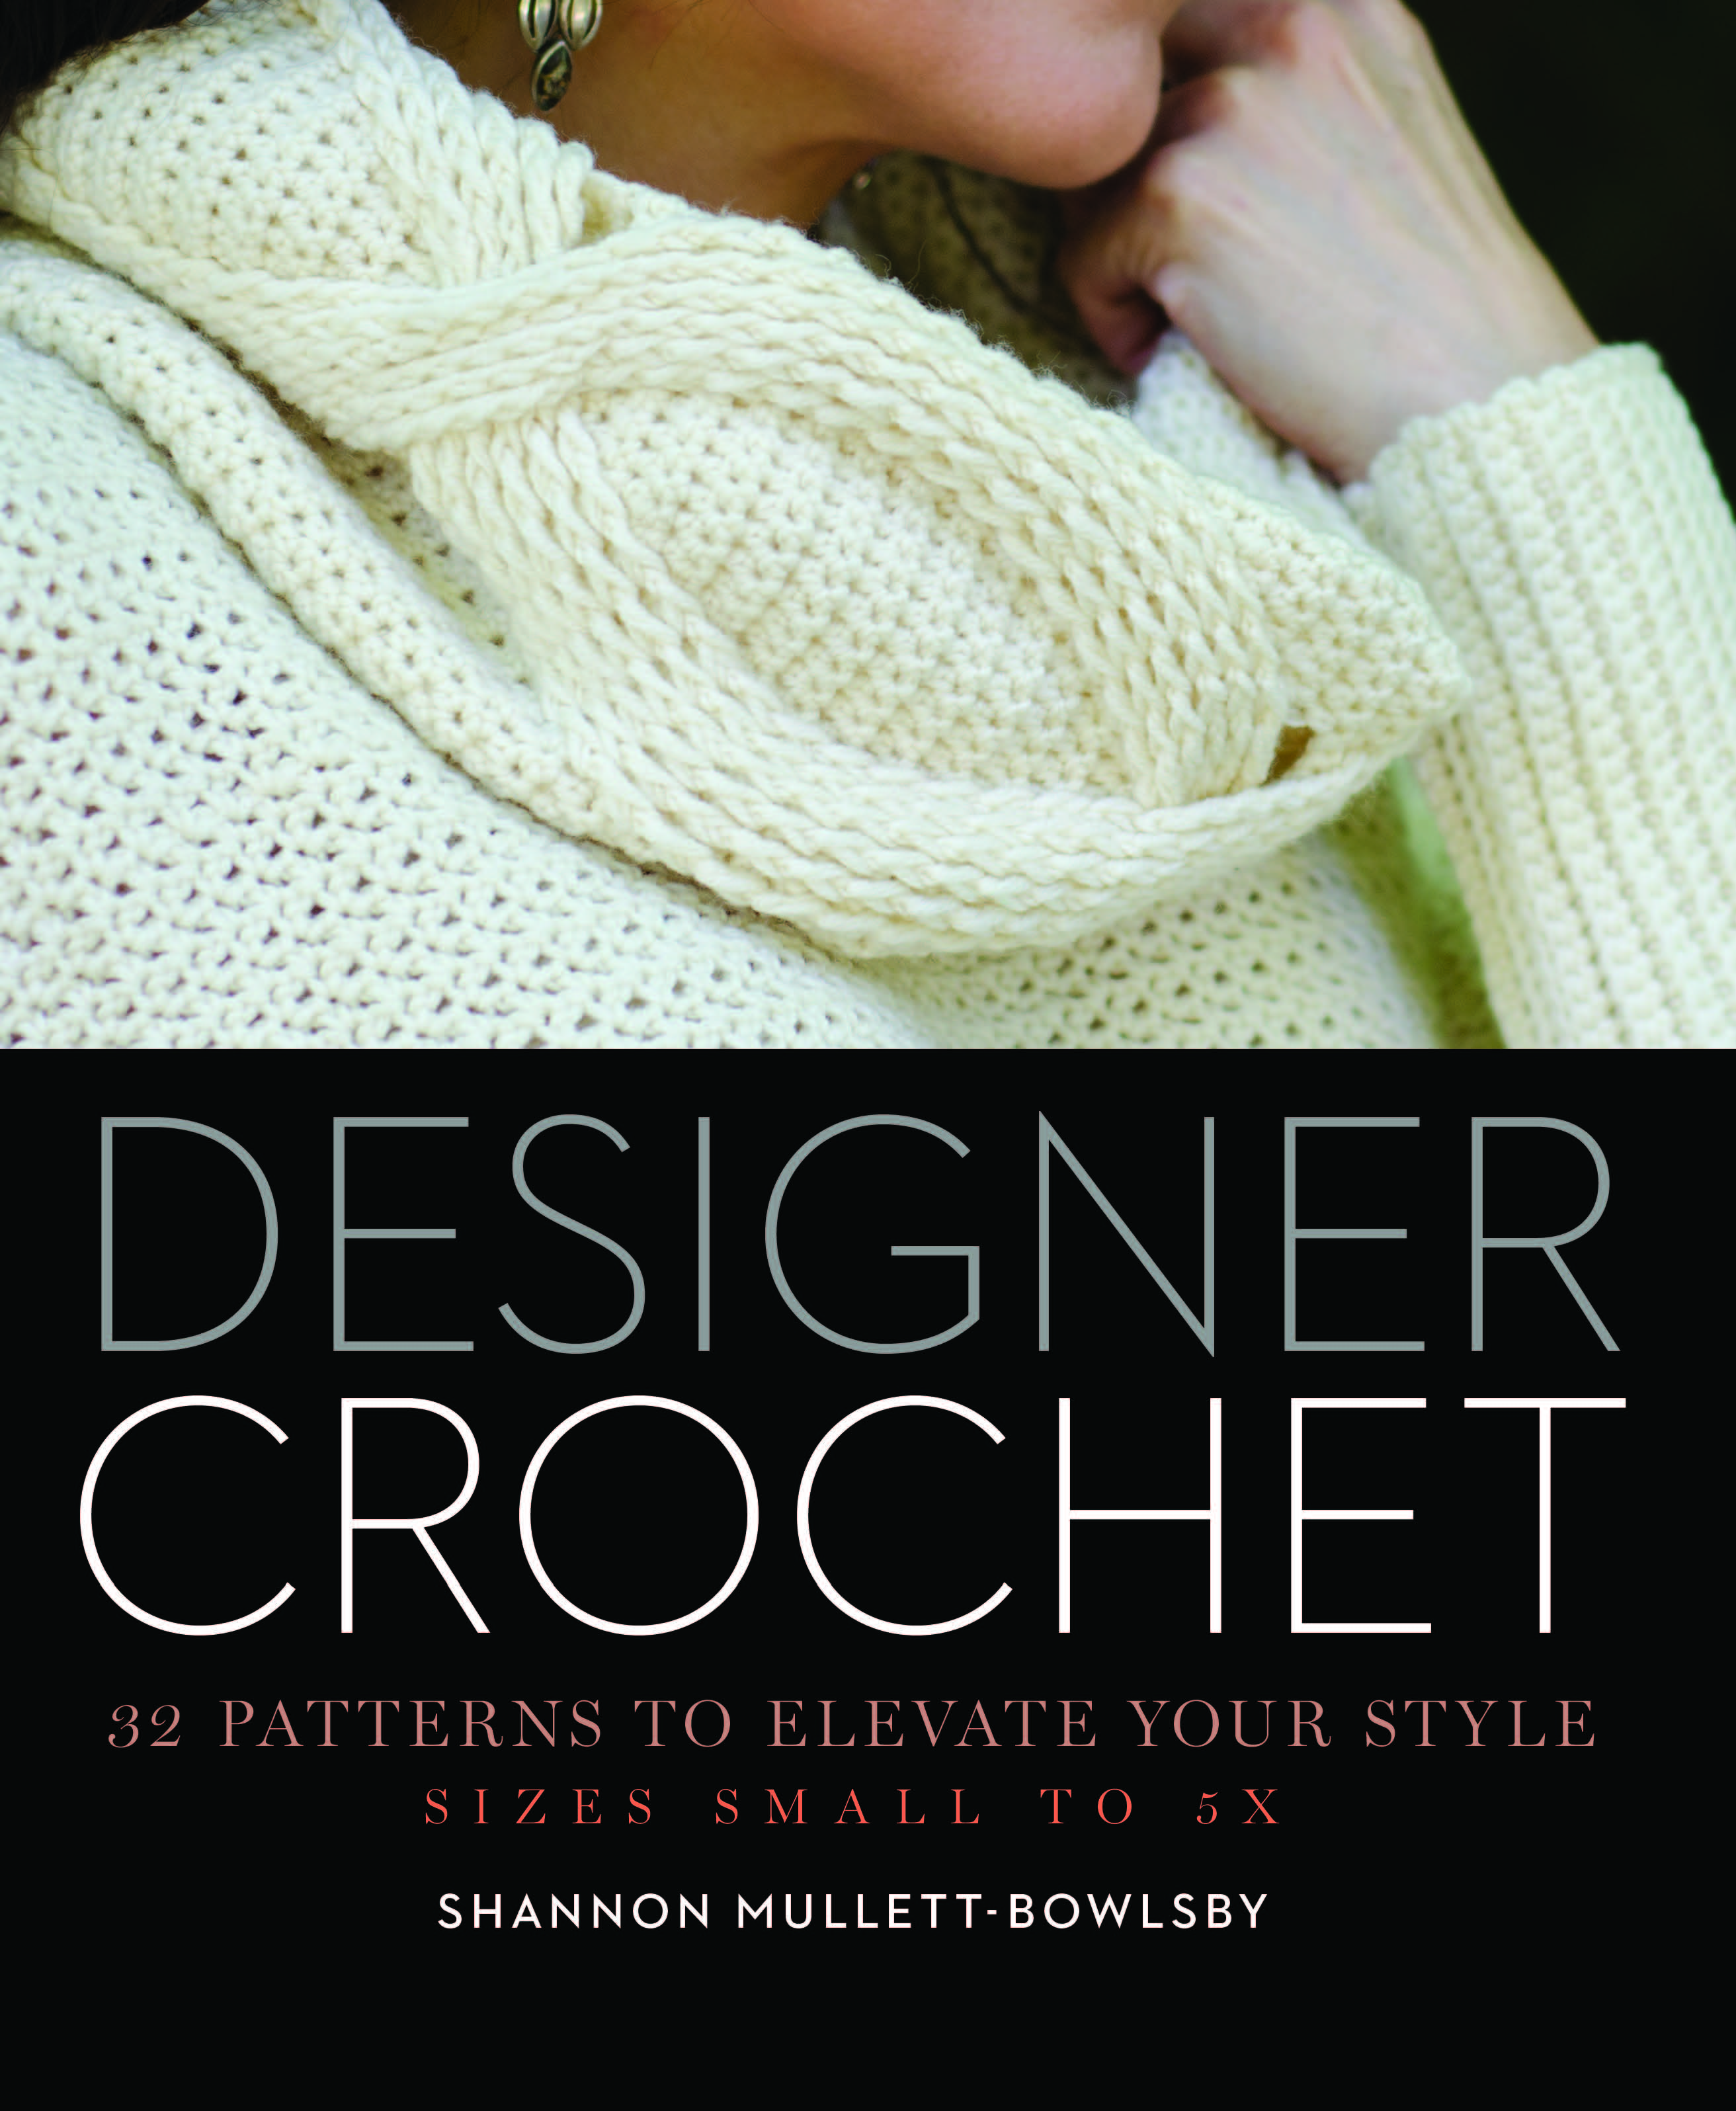 Book Review: Designer Crochet by Shannon Mullett-Bowlsby